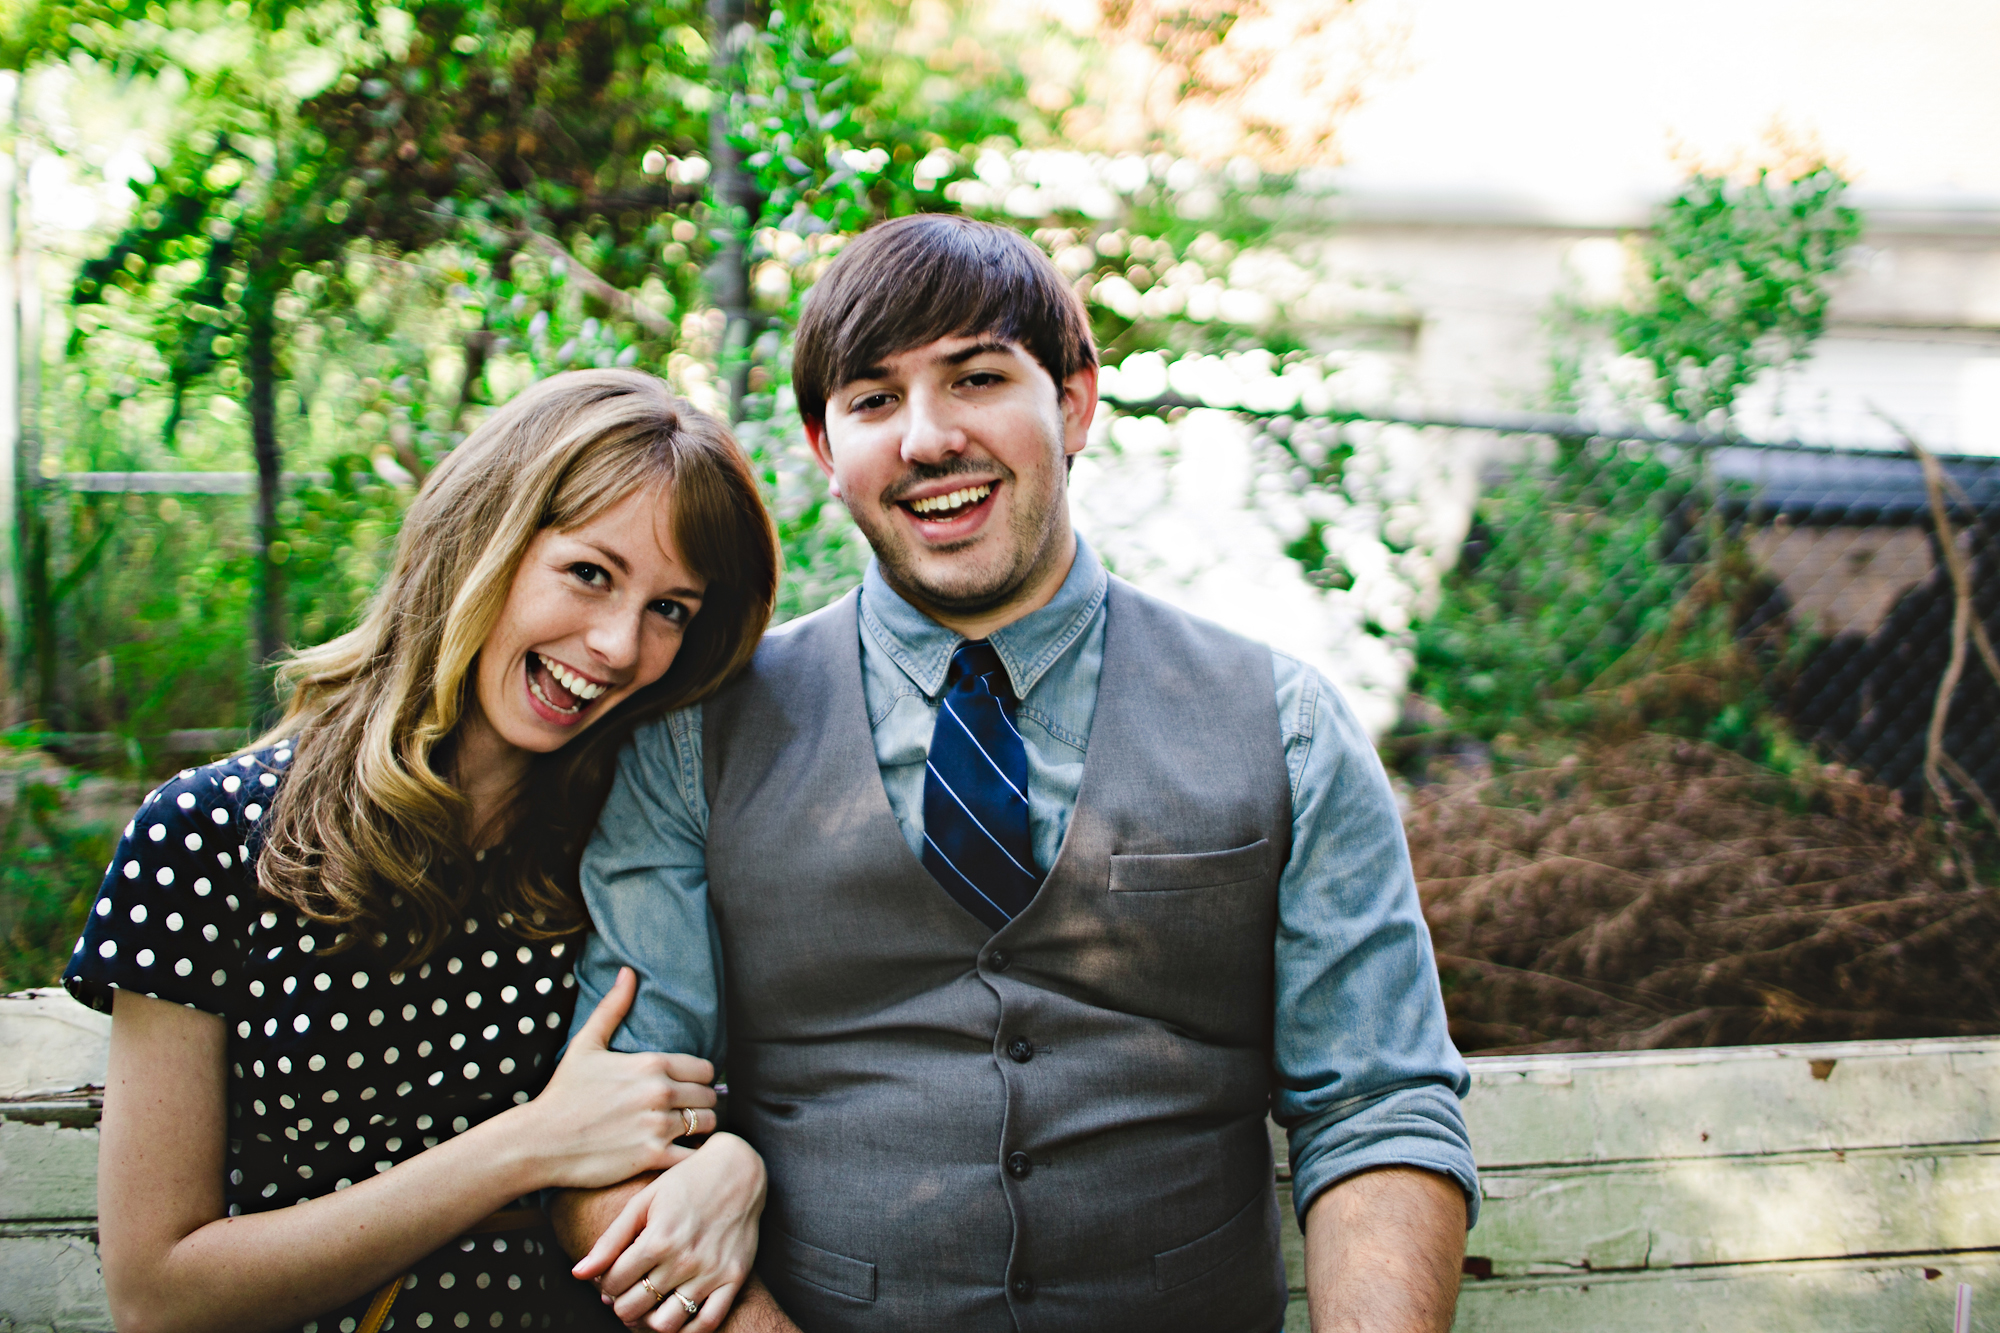 EmilyChidesterPhotography_Jena&Josh_Charlotte_NorthDavidson_Engagement-48